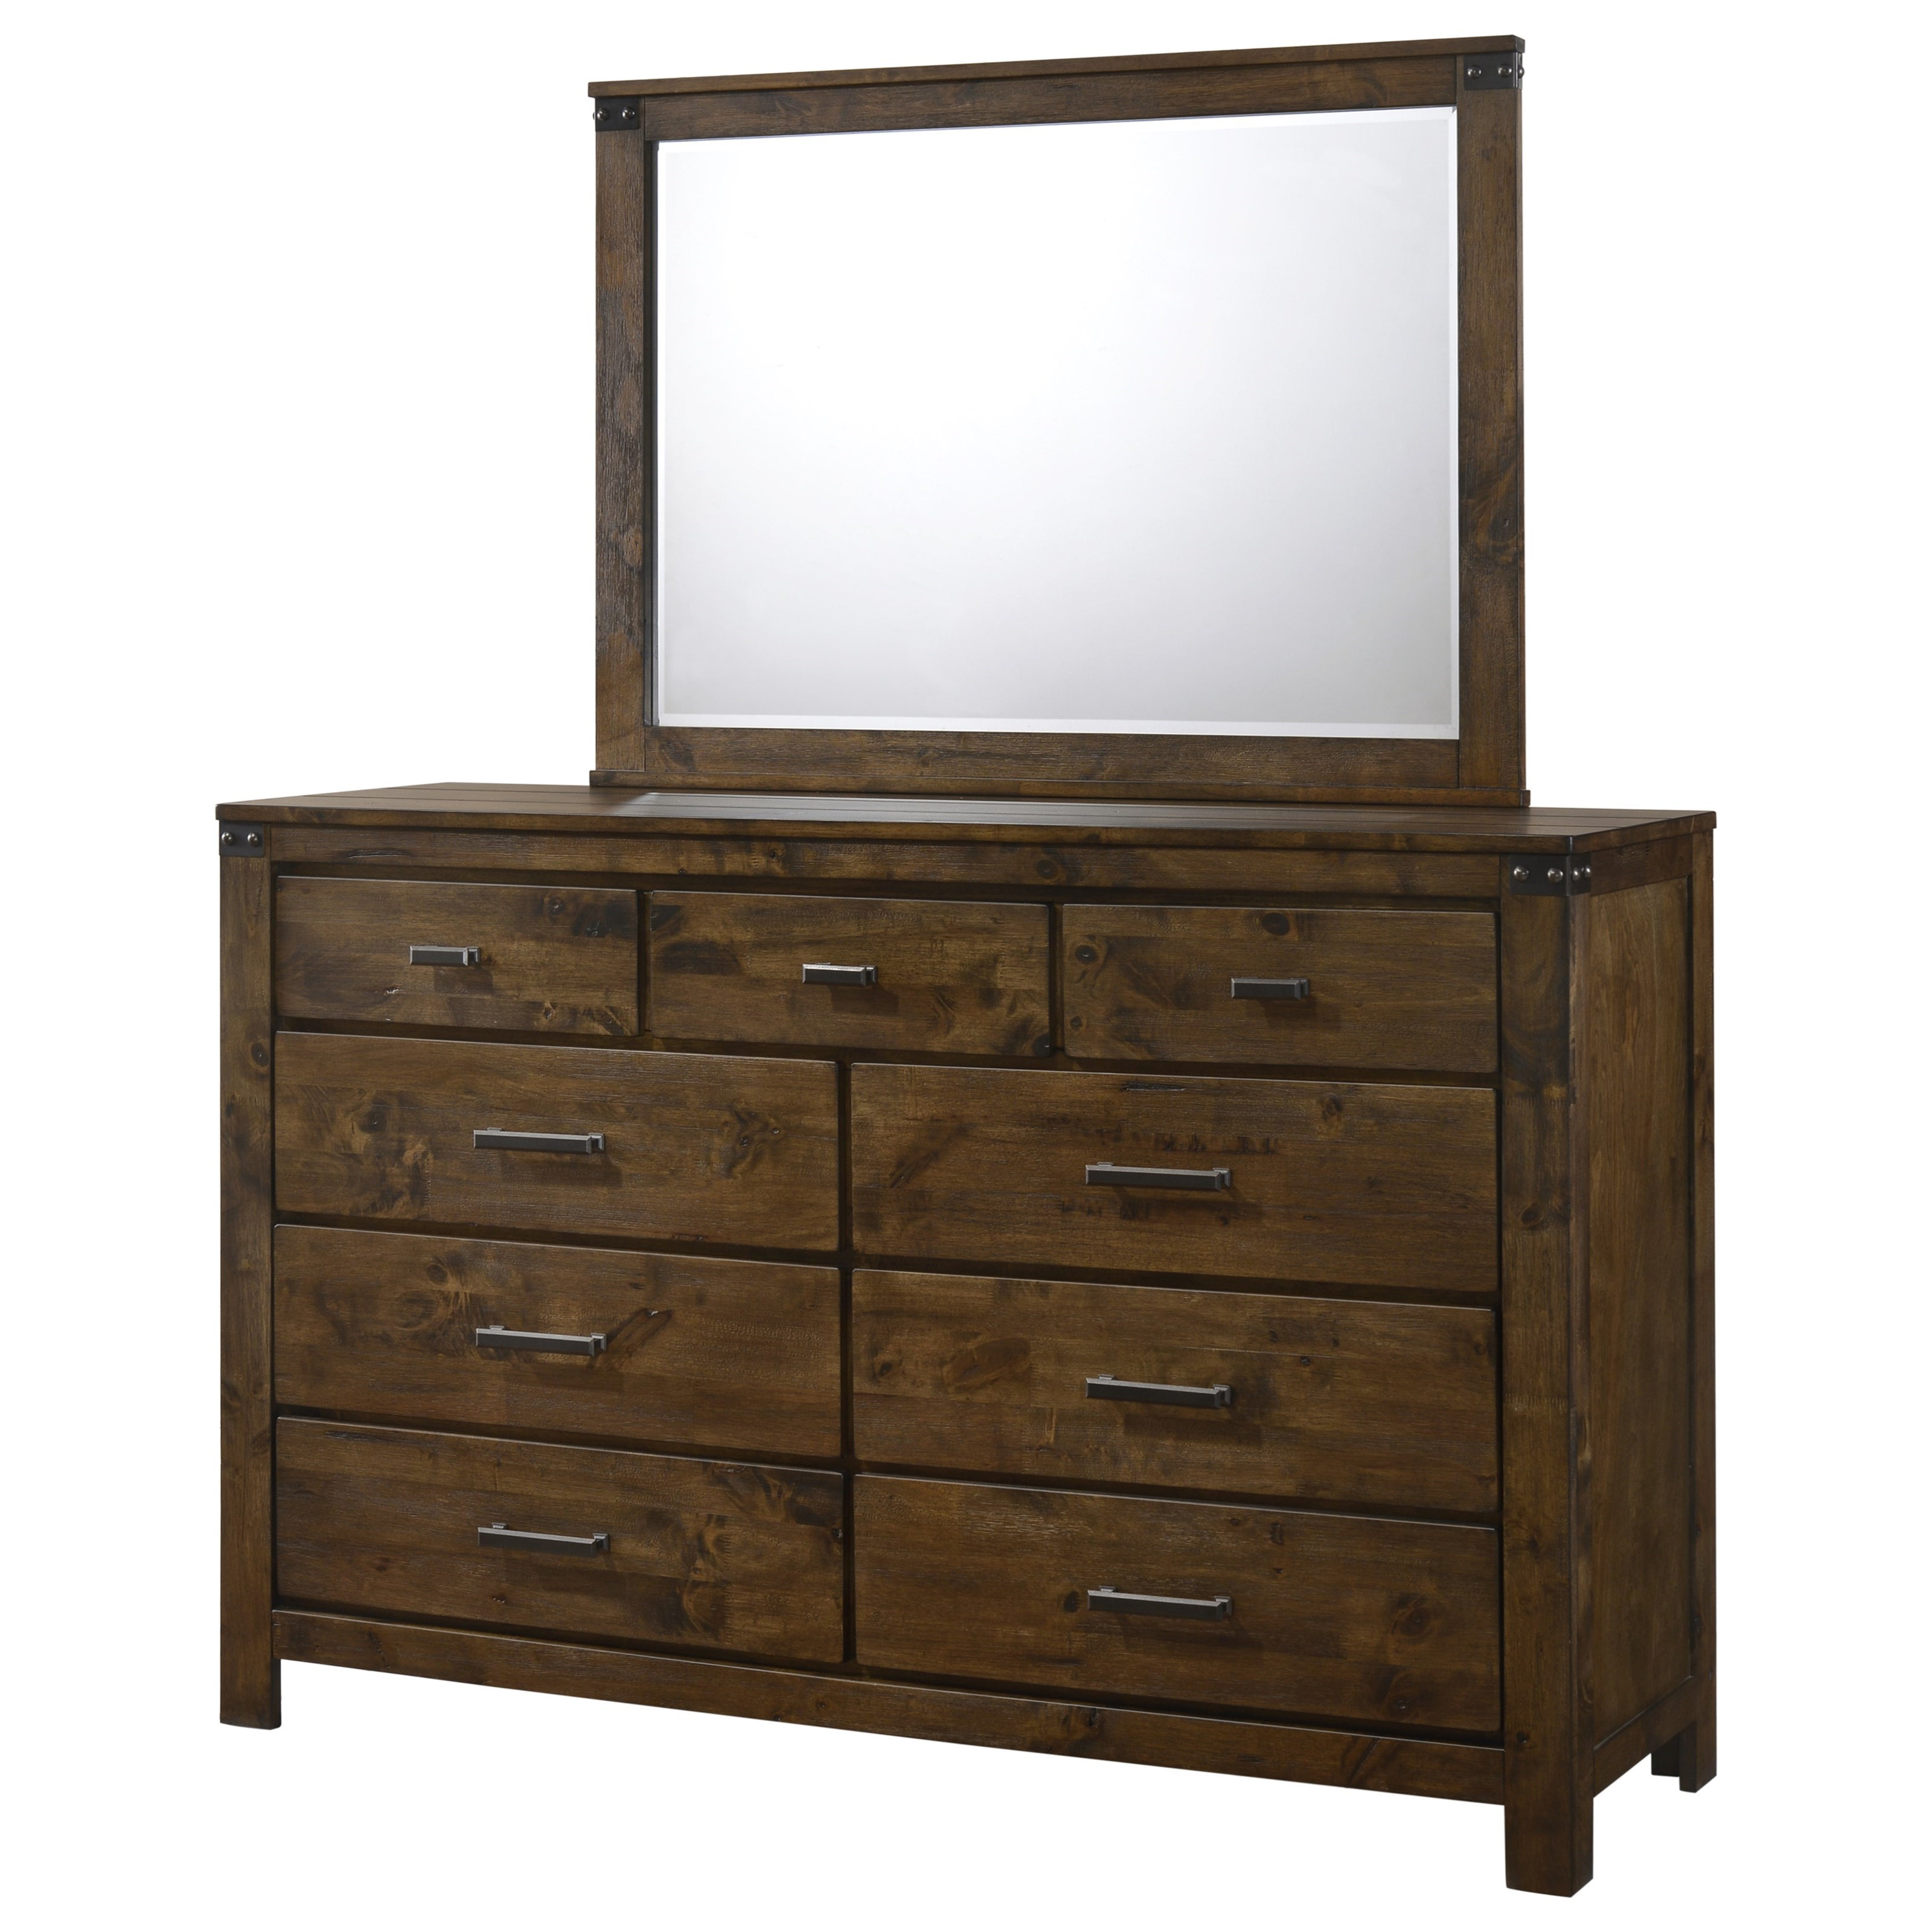 Curtis Dresser and Mirror Combo by Crown Mark at Northeast Factory Direct